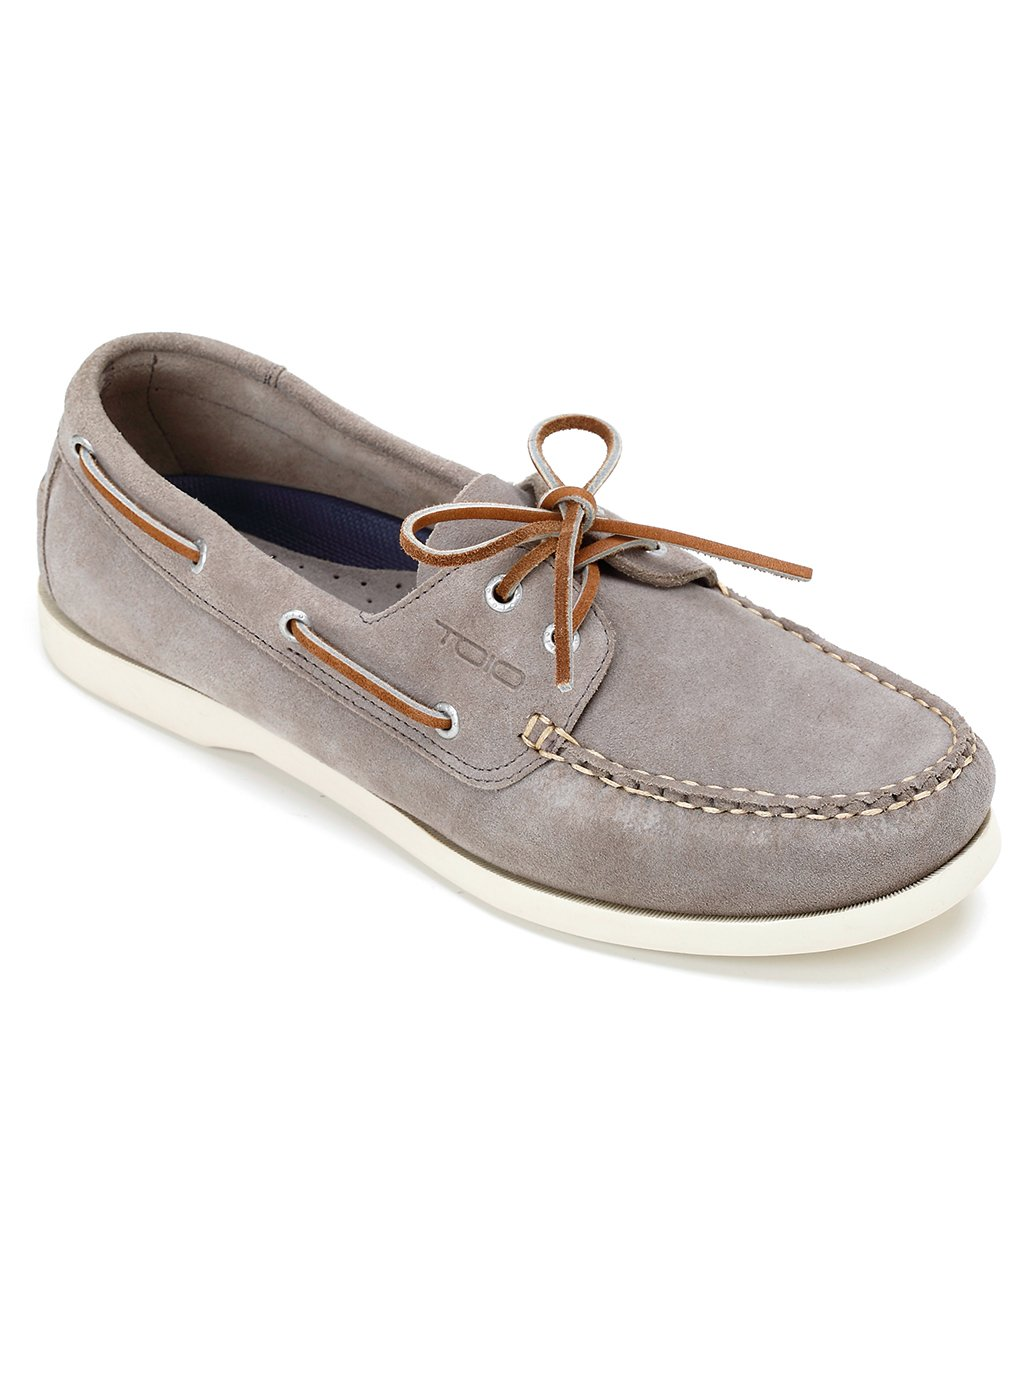 TOIO Mens HARBOUR SHOE MOCASSIN - Handcrafted 100% leather (suede) rubber  sole with anti-slip tread: Amazon.co.uk: Sports & Outdoors